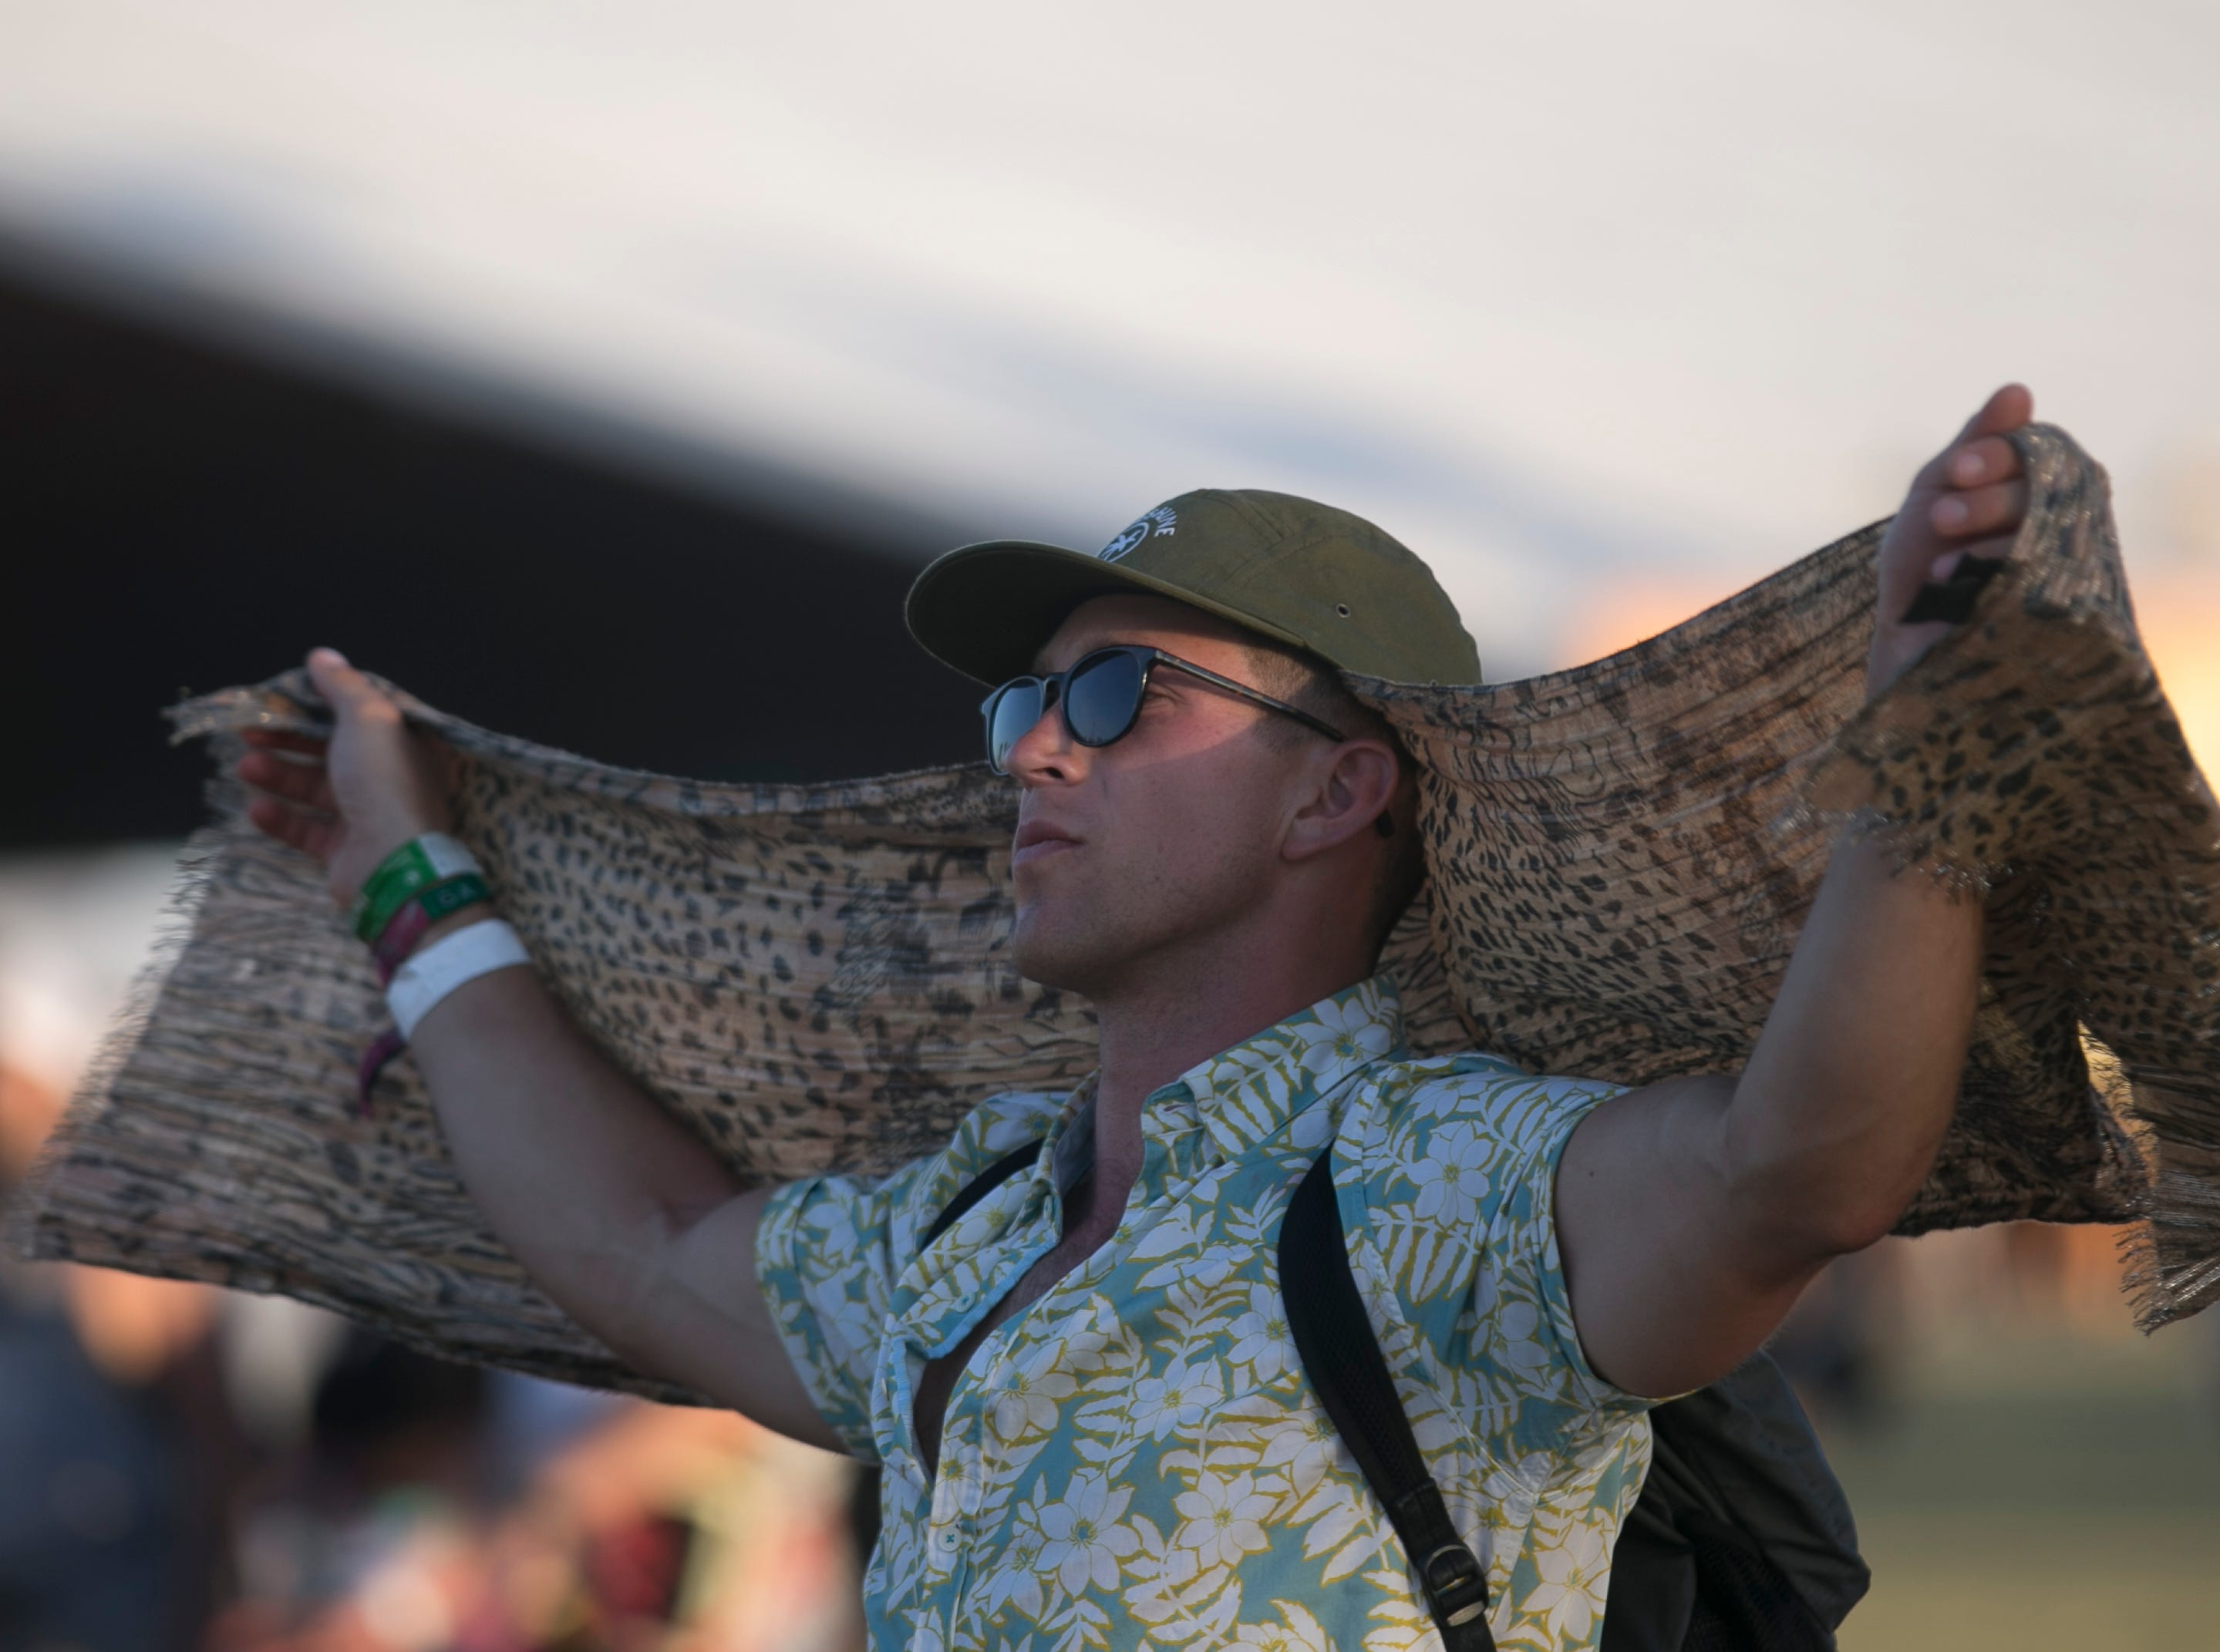 Festival goers watch Blood Orange perform on the Outdoor stage at the Coachella Valley Music and Arts Festival in Indio, Calif. on Sun. April 21, 2019.